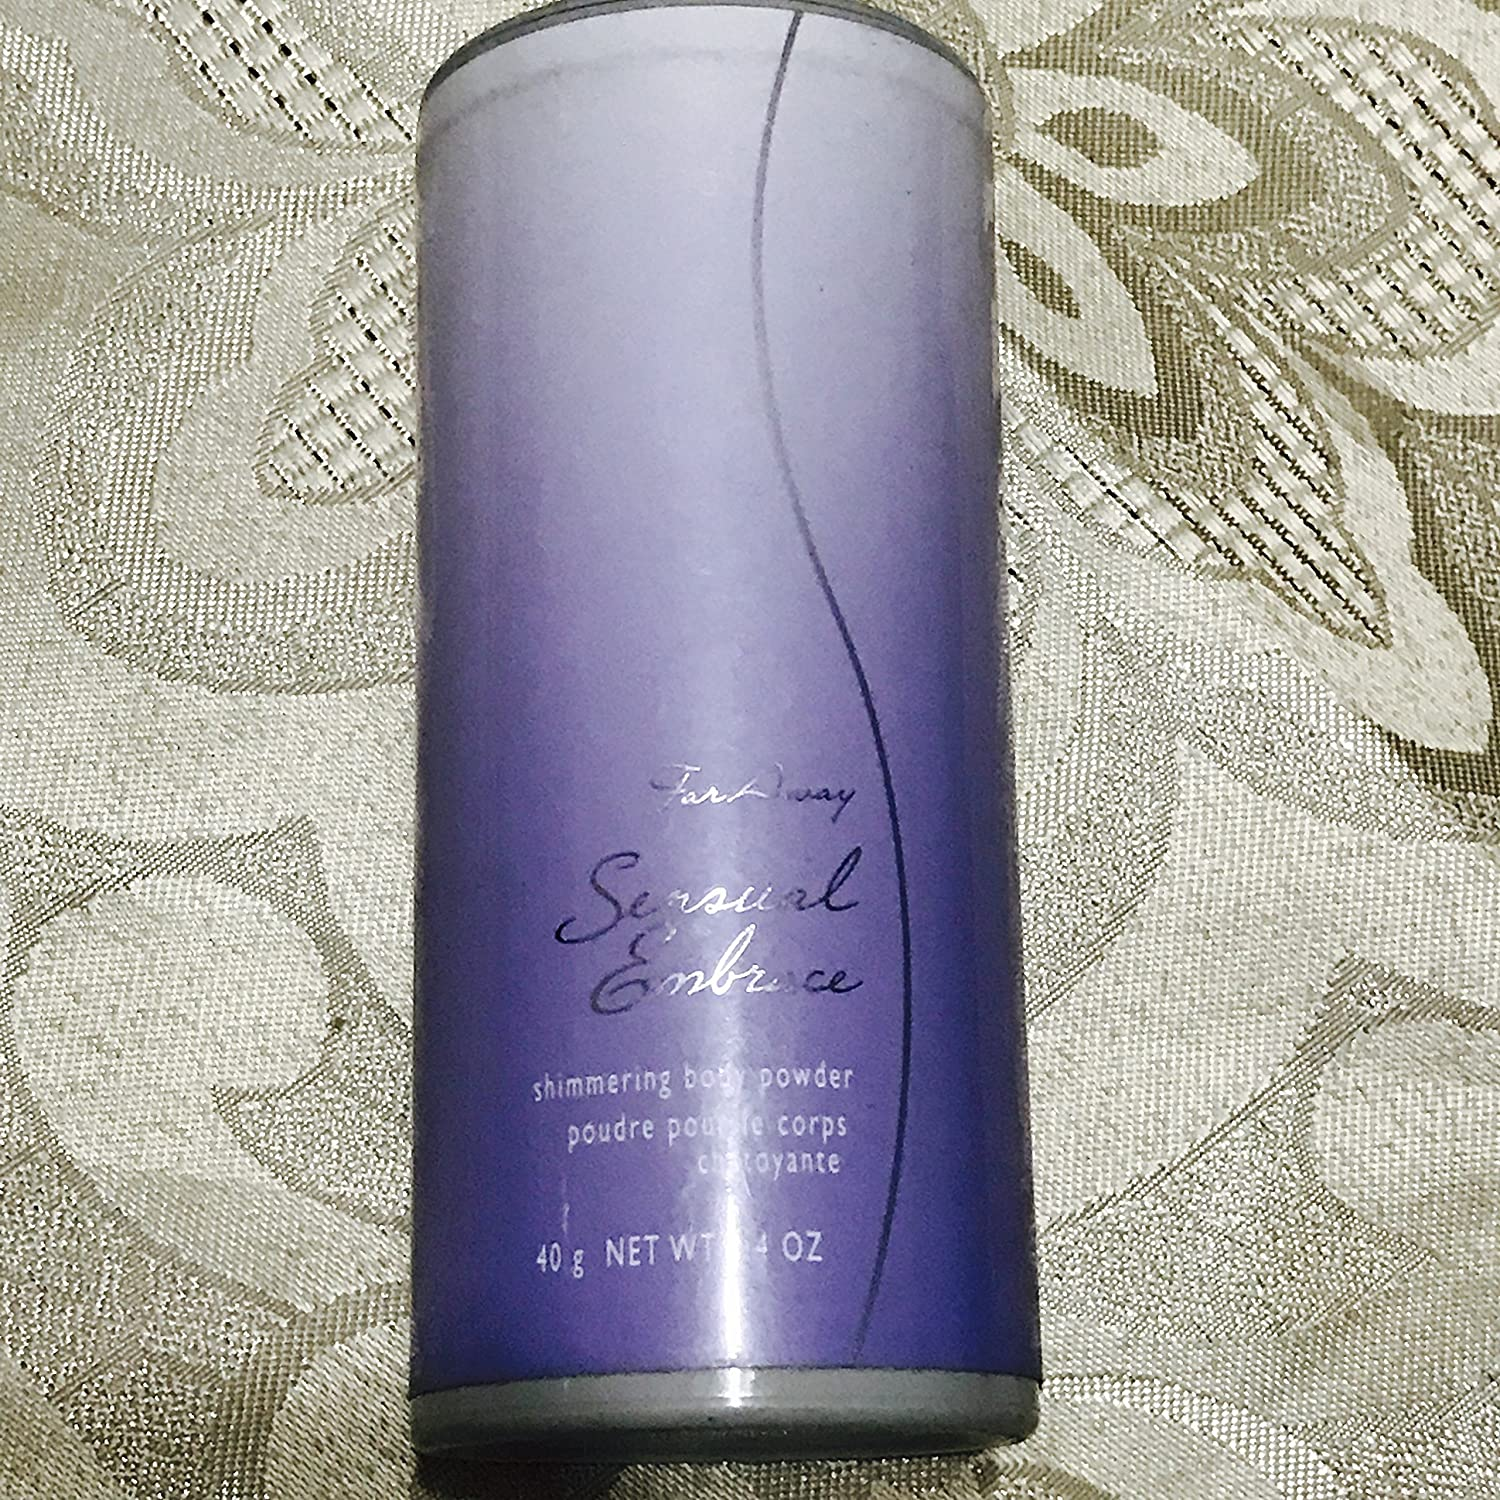 Avon Far Away Sensual Embrace Shimmering Body Powder